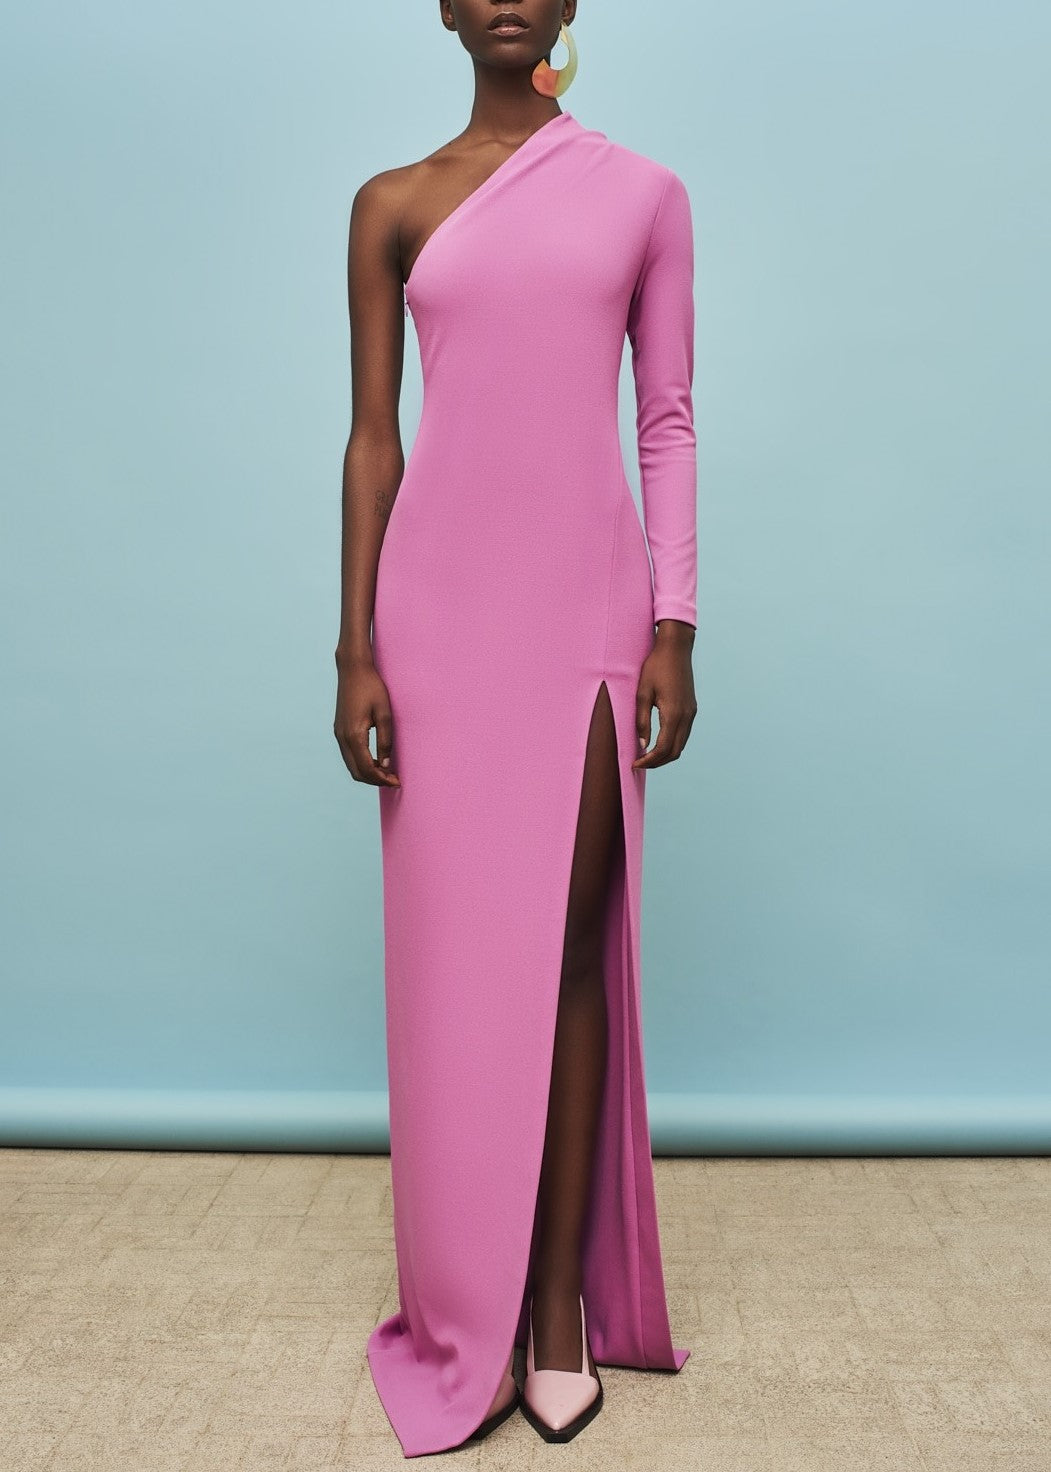 Solace Nadia maxi dress in lilac